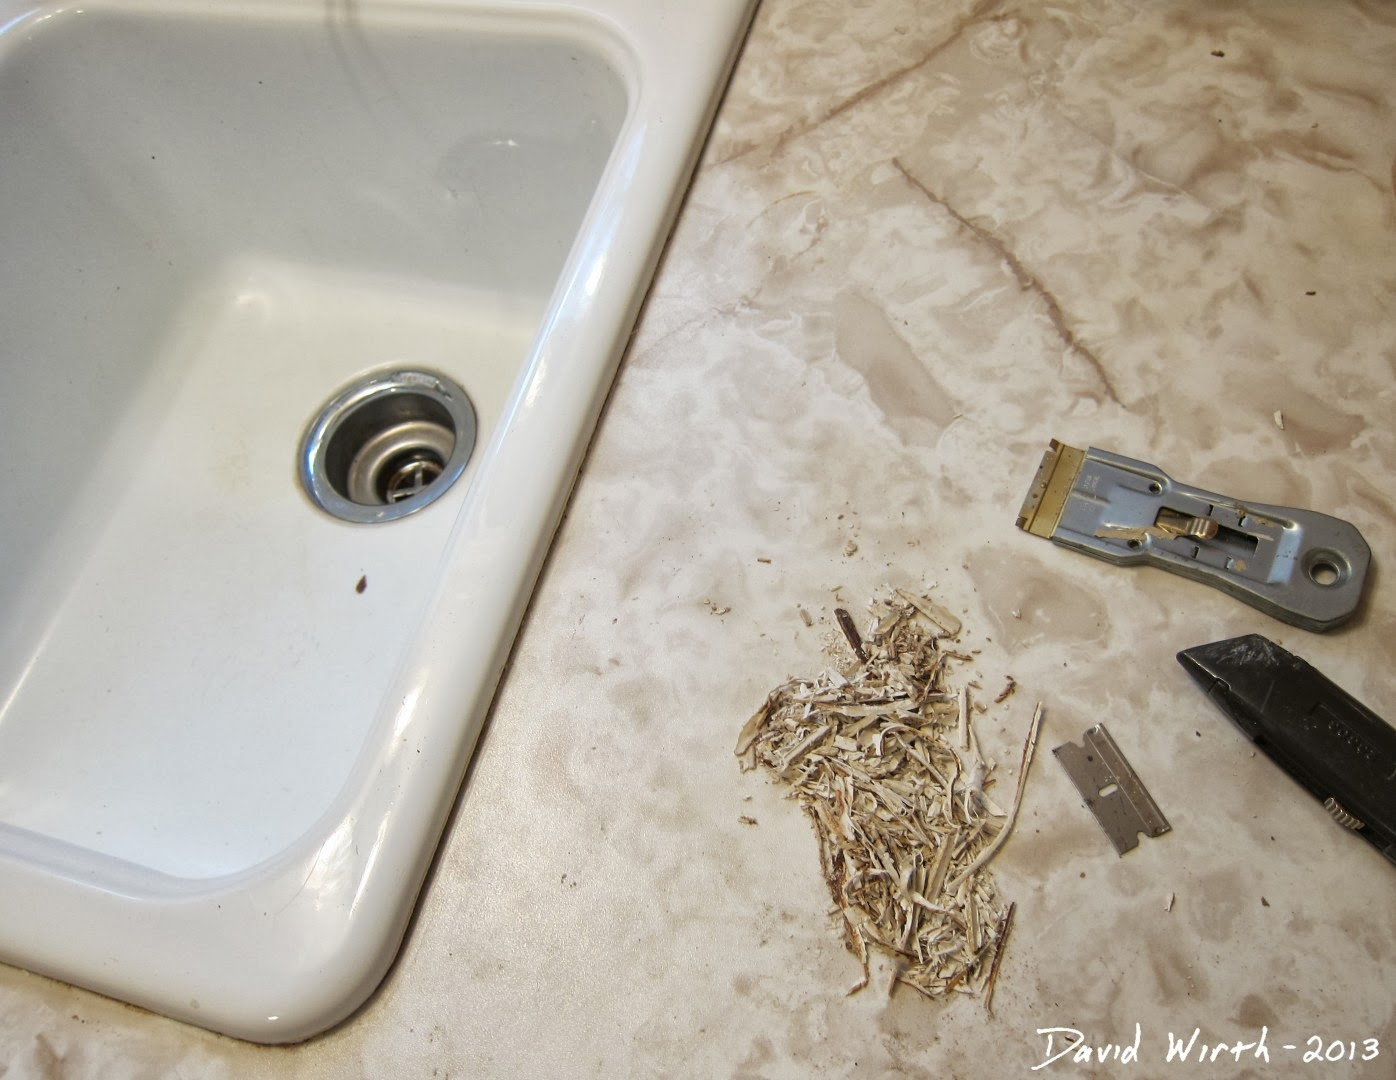 Bathroom Sink Sealant : like when I was done scraping caulk off just a one half of the sink ...